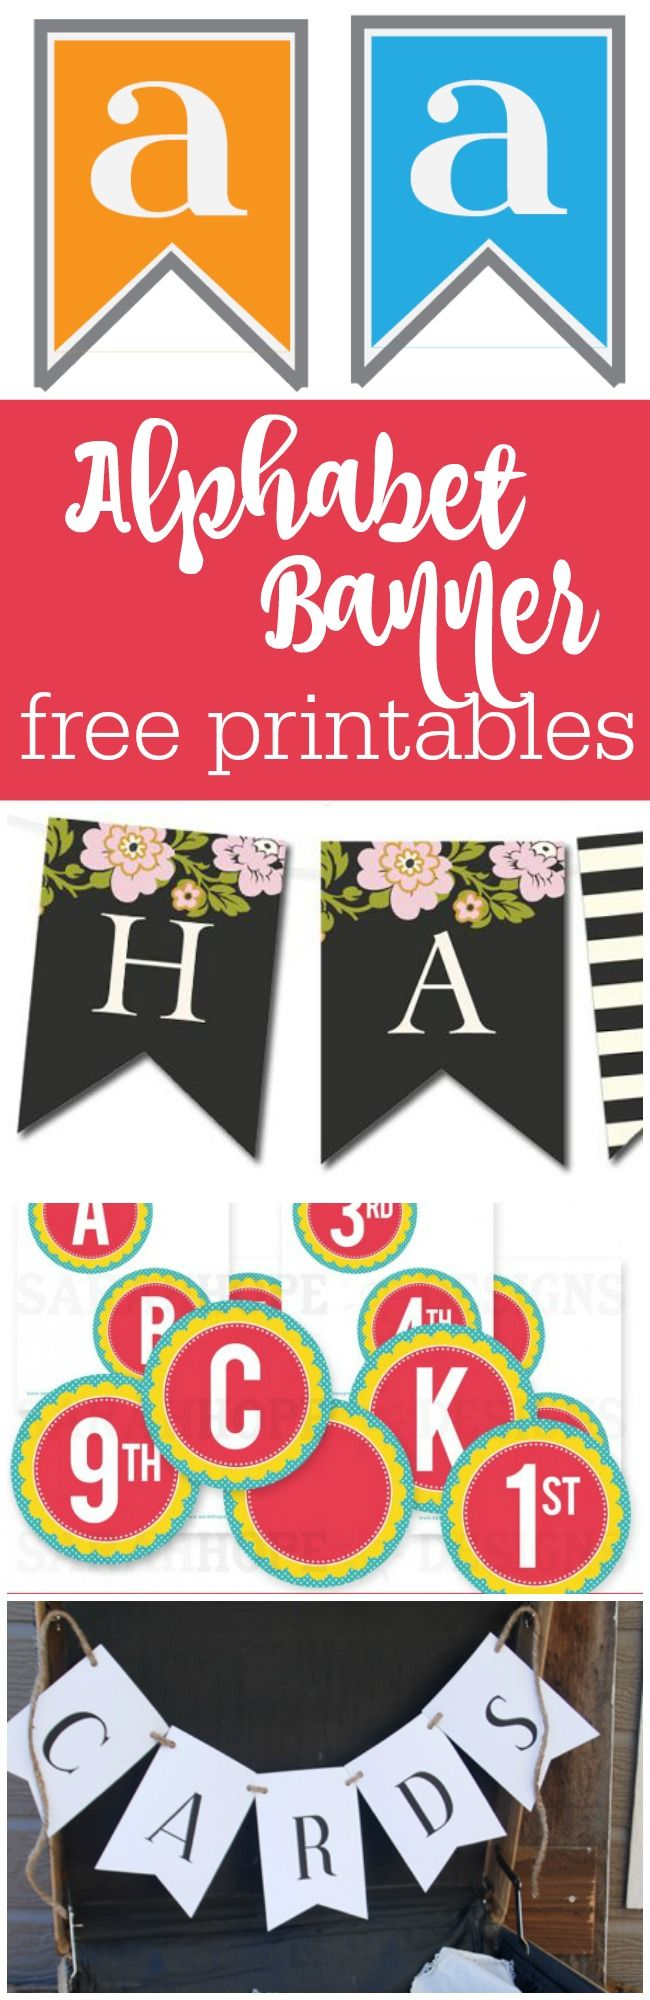 free bridal shower printable banner%0A    alphabet and number free printable banners curated by The Party Teacher    http